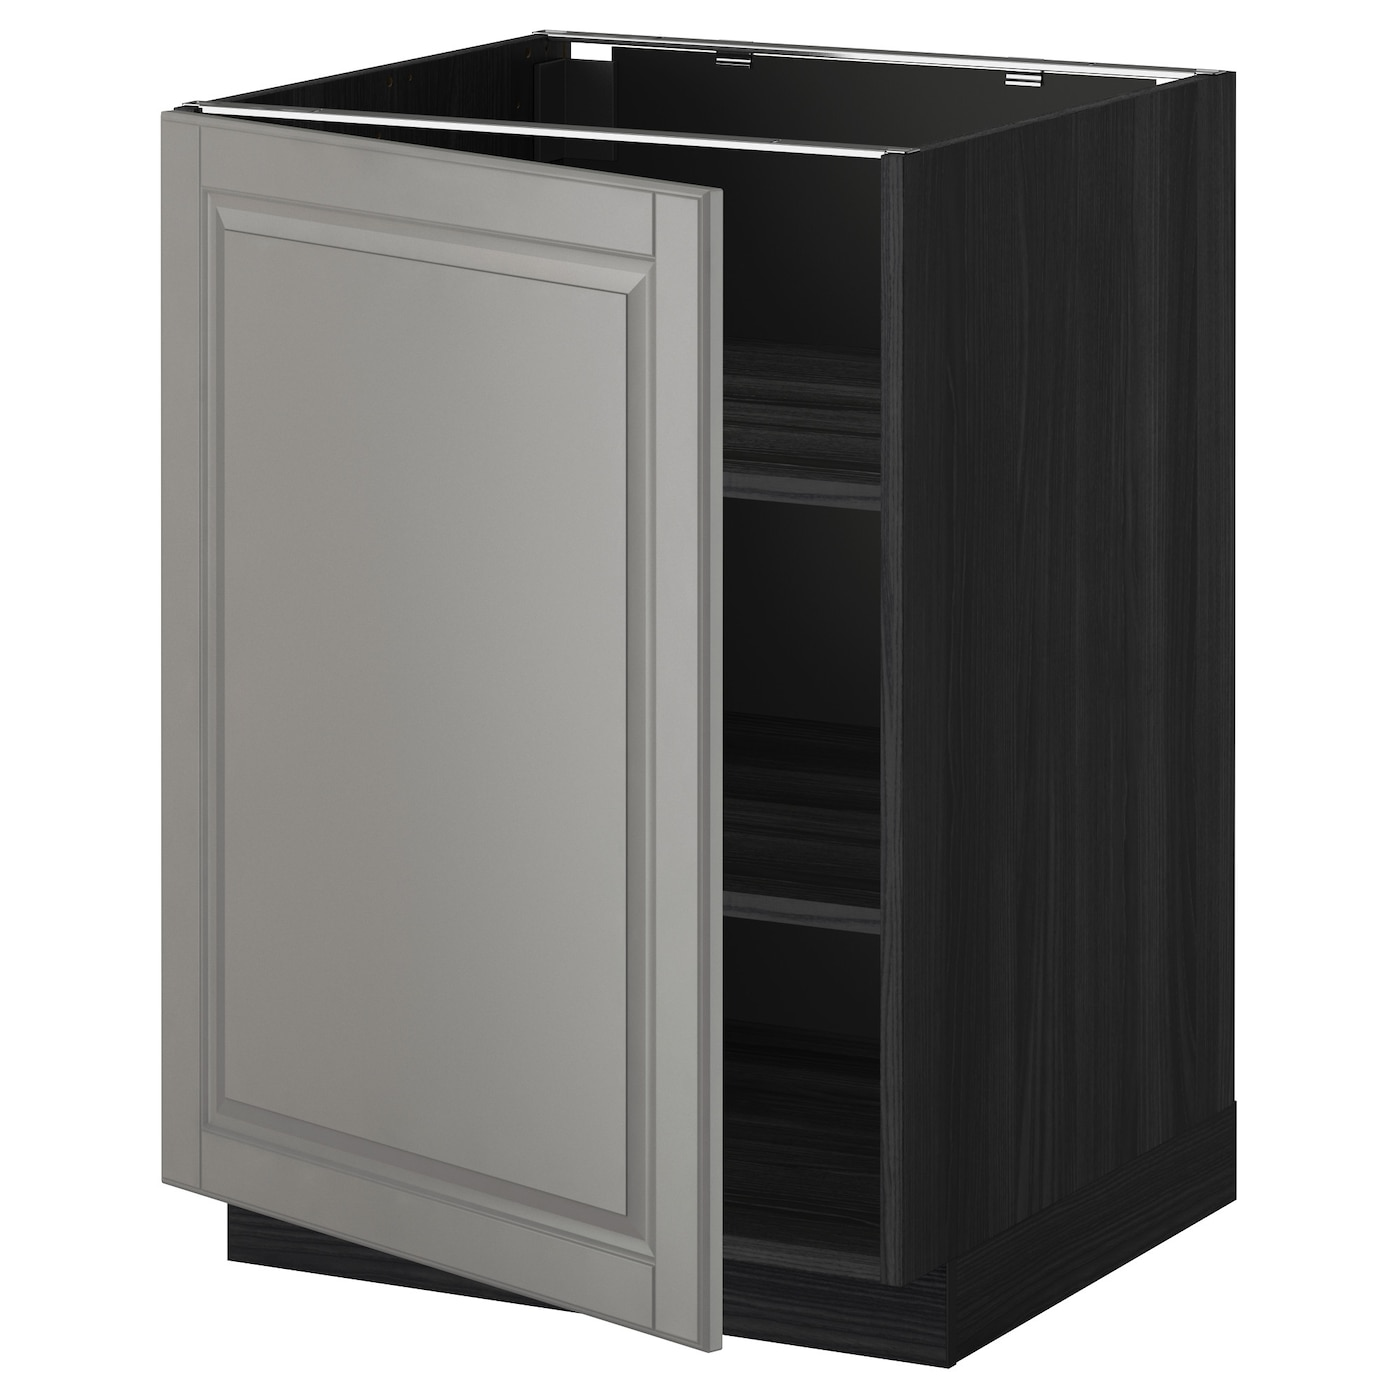 Metod Base Cabinet With Shelves Black Bodbyn Grey 60x60 Cm Ikea